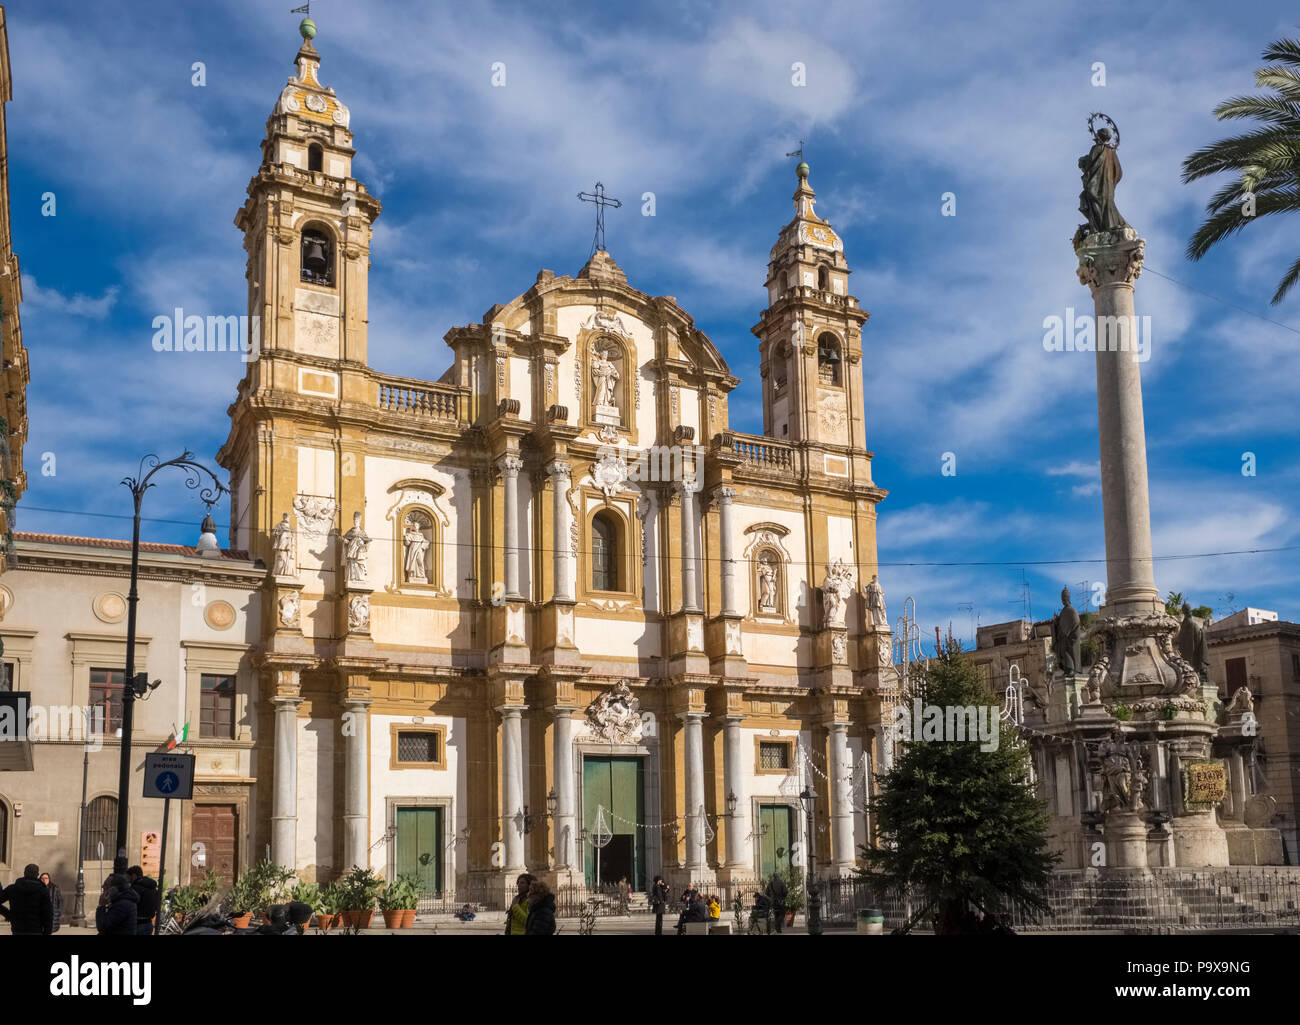 Sicile San Domenico, Palermo, Sicily, Italy, Europe Photo Stock